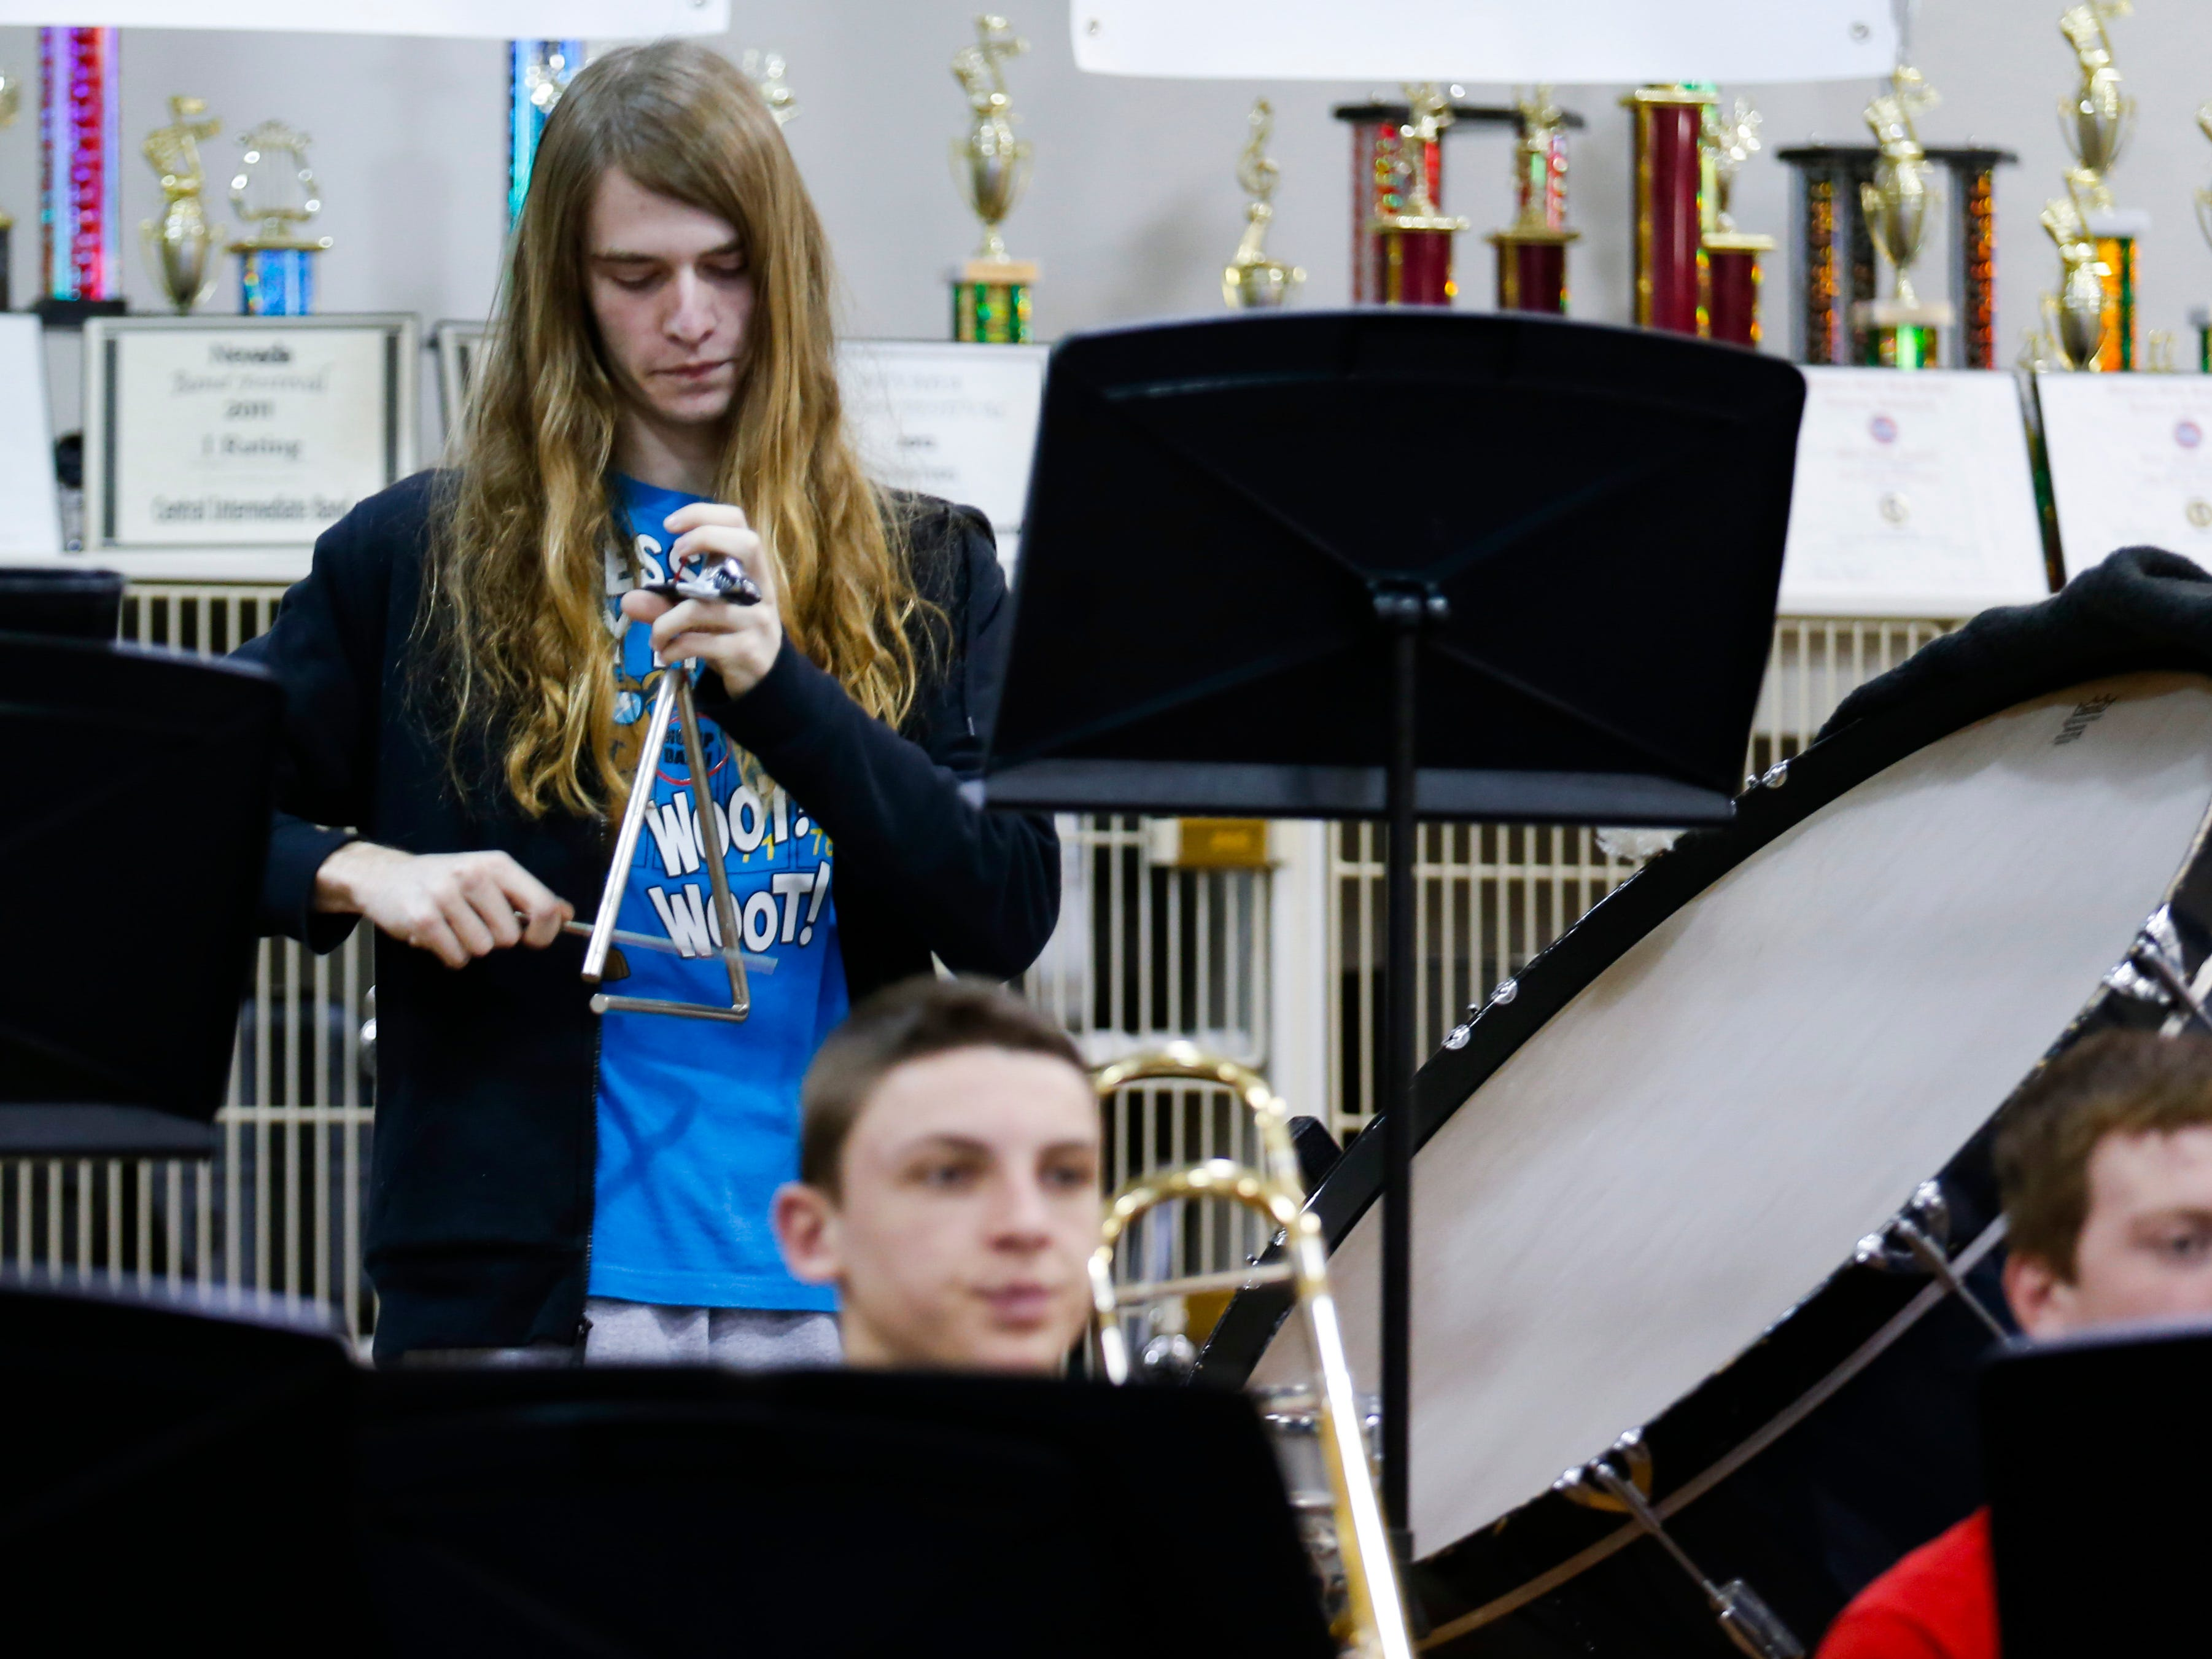 Jacob Sharp, a Central High School junior, plays the triangle during band practice on Wednesday, Jan. 16, 2018. The 53-student wind ensemble will be a featured at the annual state conference of the Missouri Music Educators Association next week.